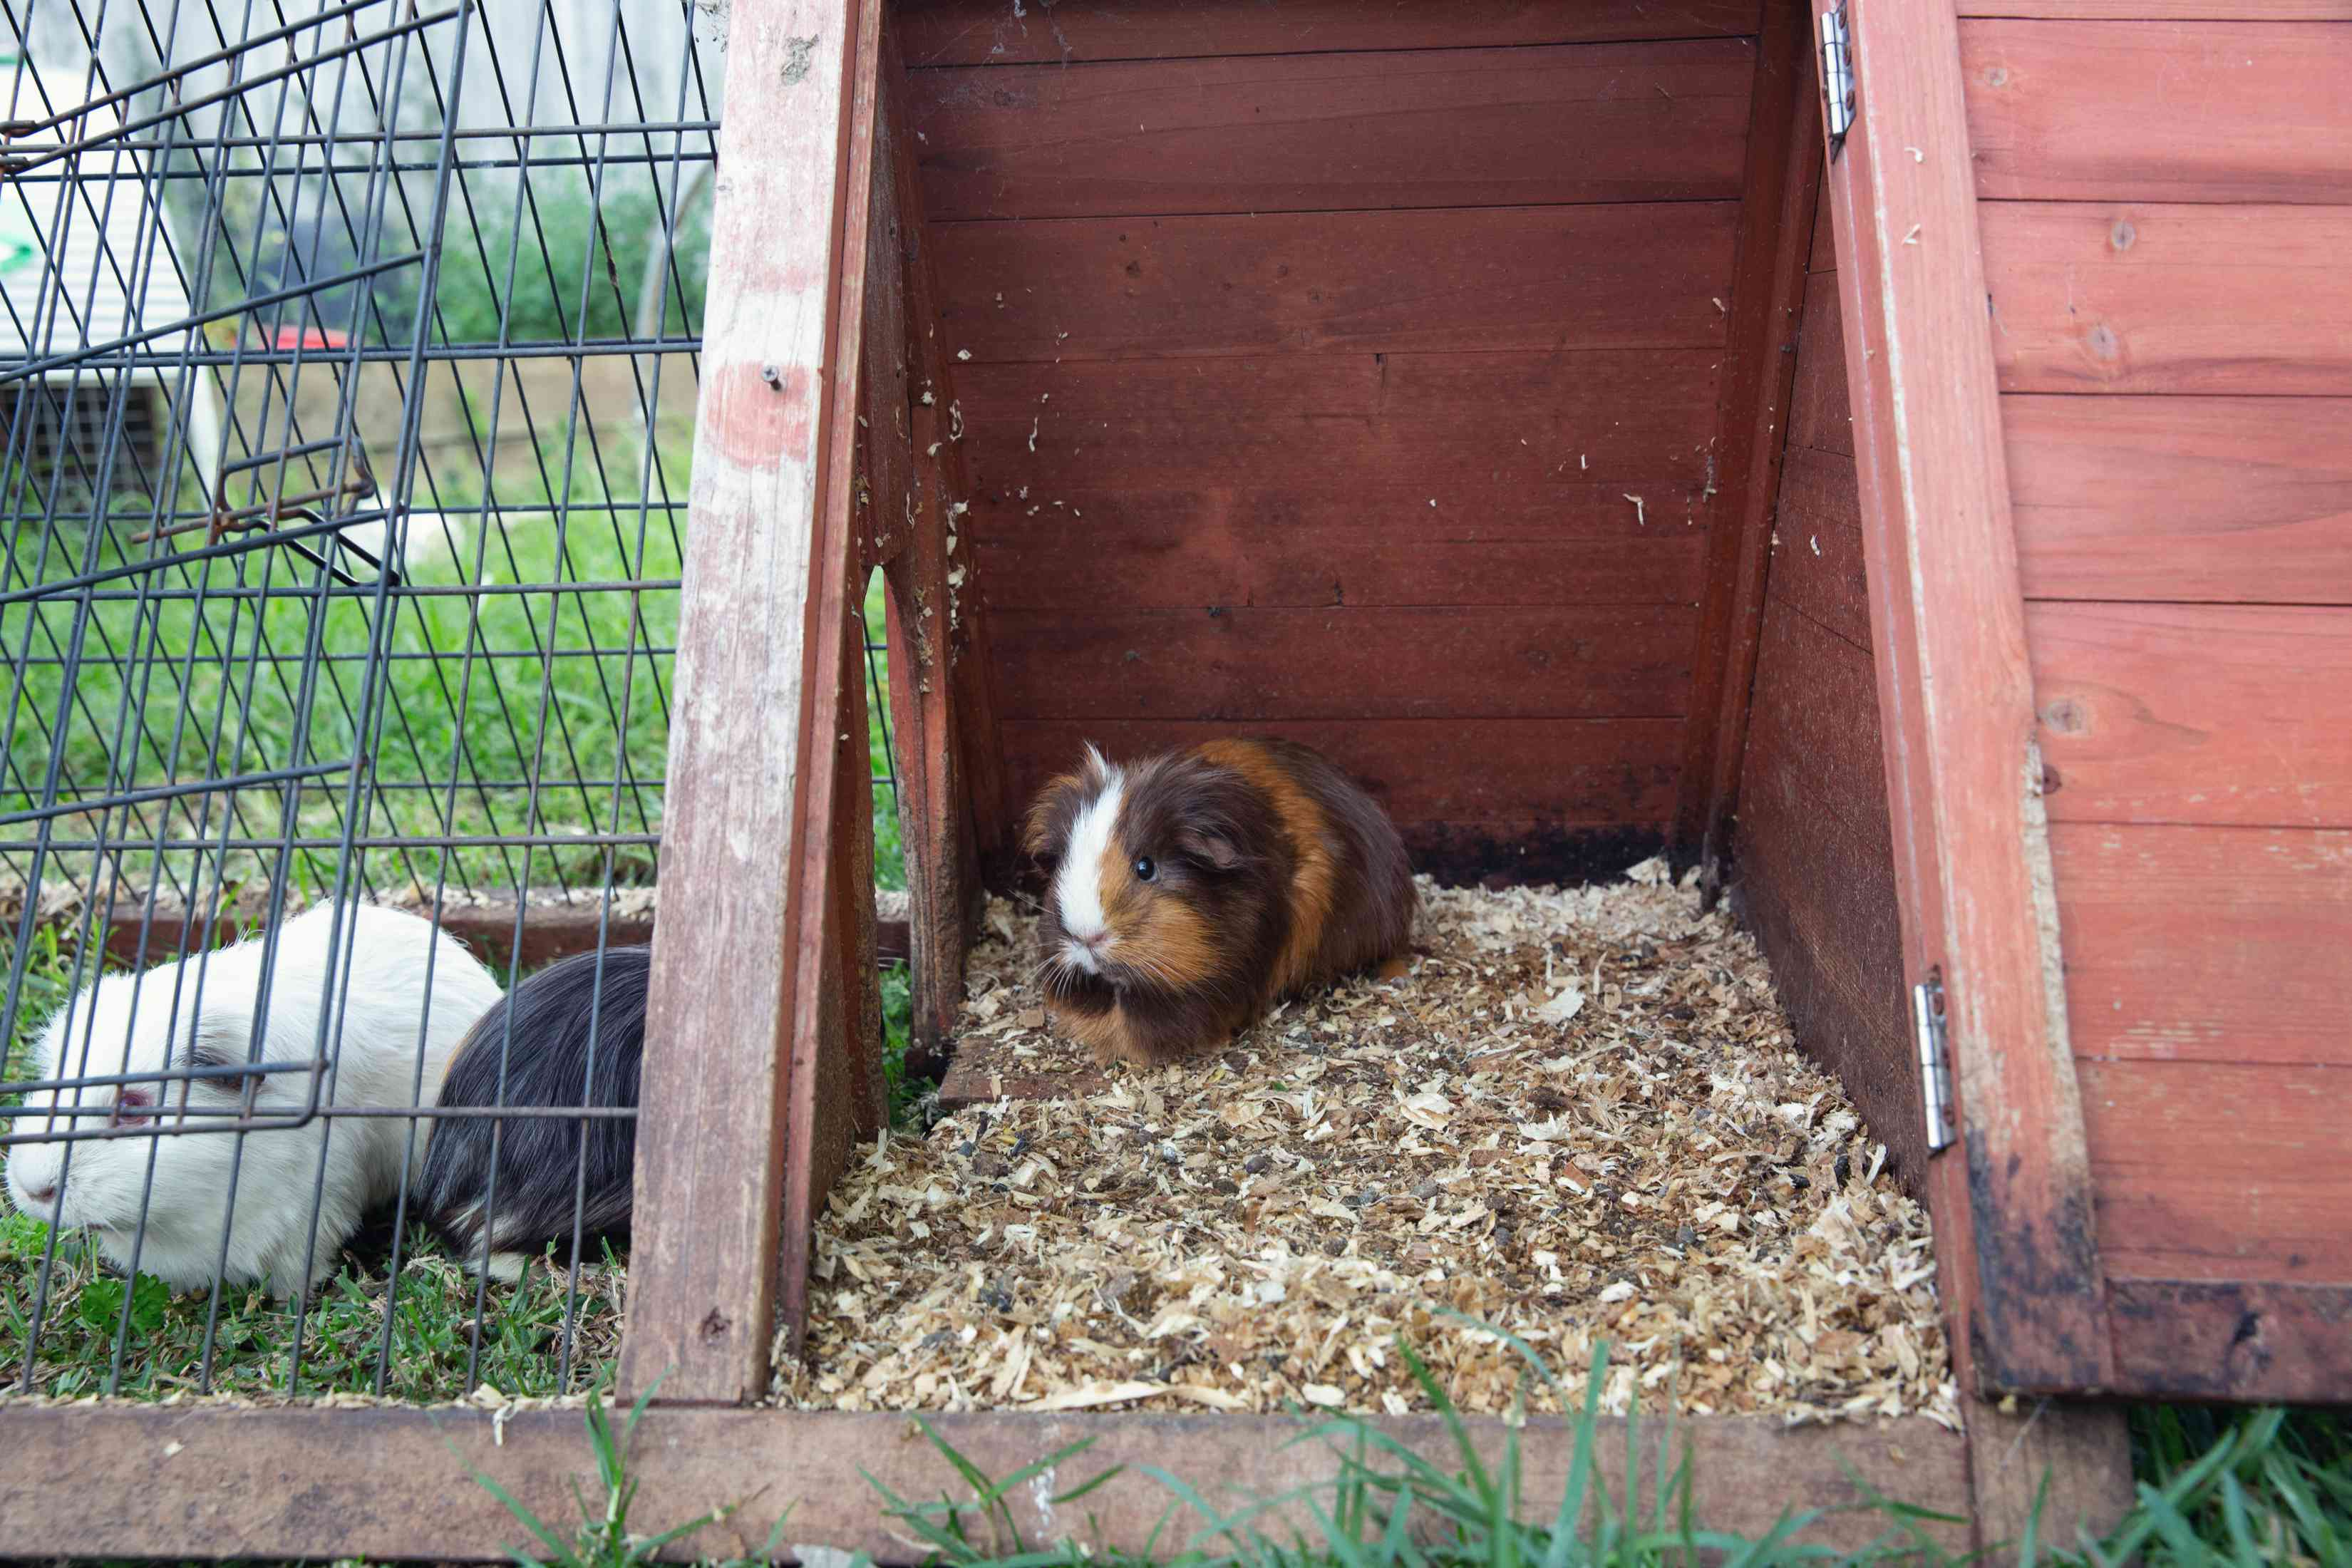 Guinea pigs in outdoor red cage with wire fence open